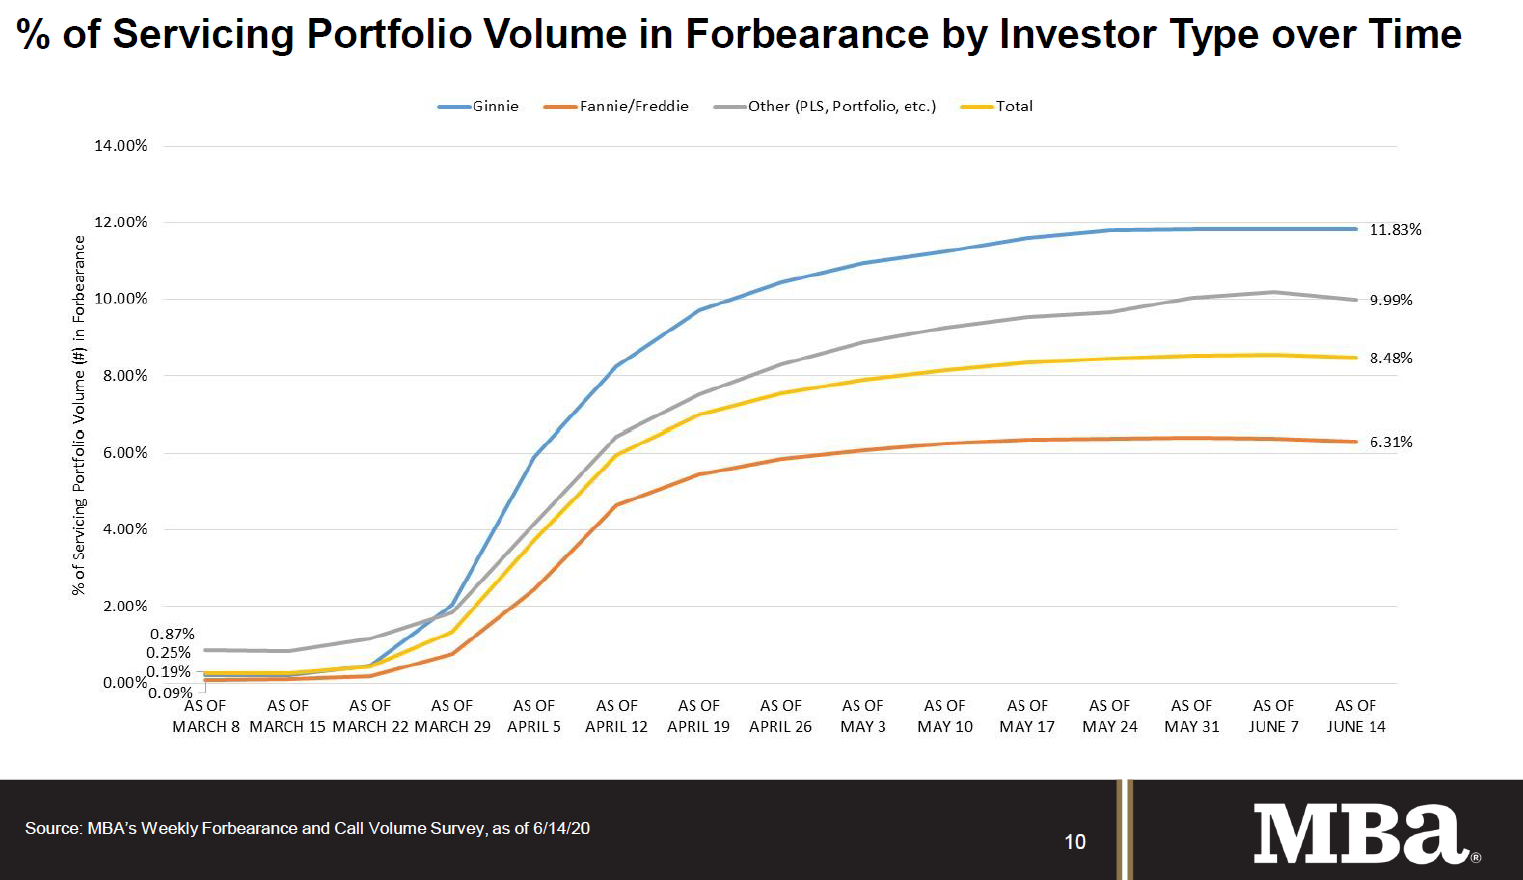 Visualization for Percent of Mortgage Servicing Portfolio Volume in Forbearance by Investor Since March 8